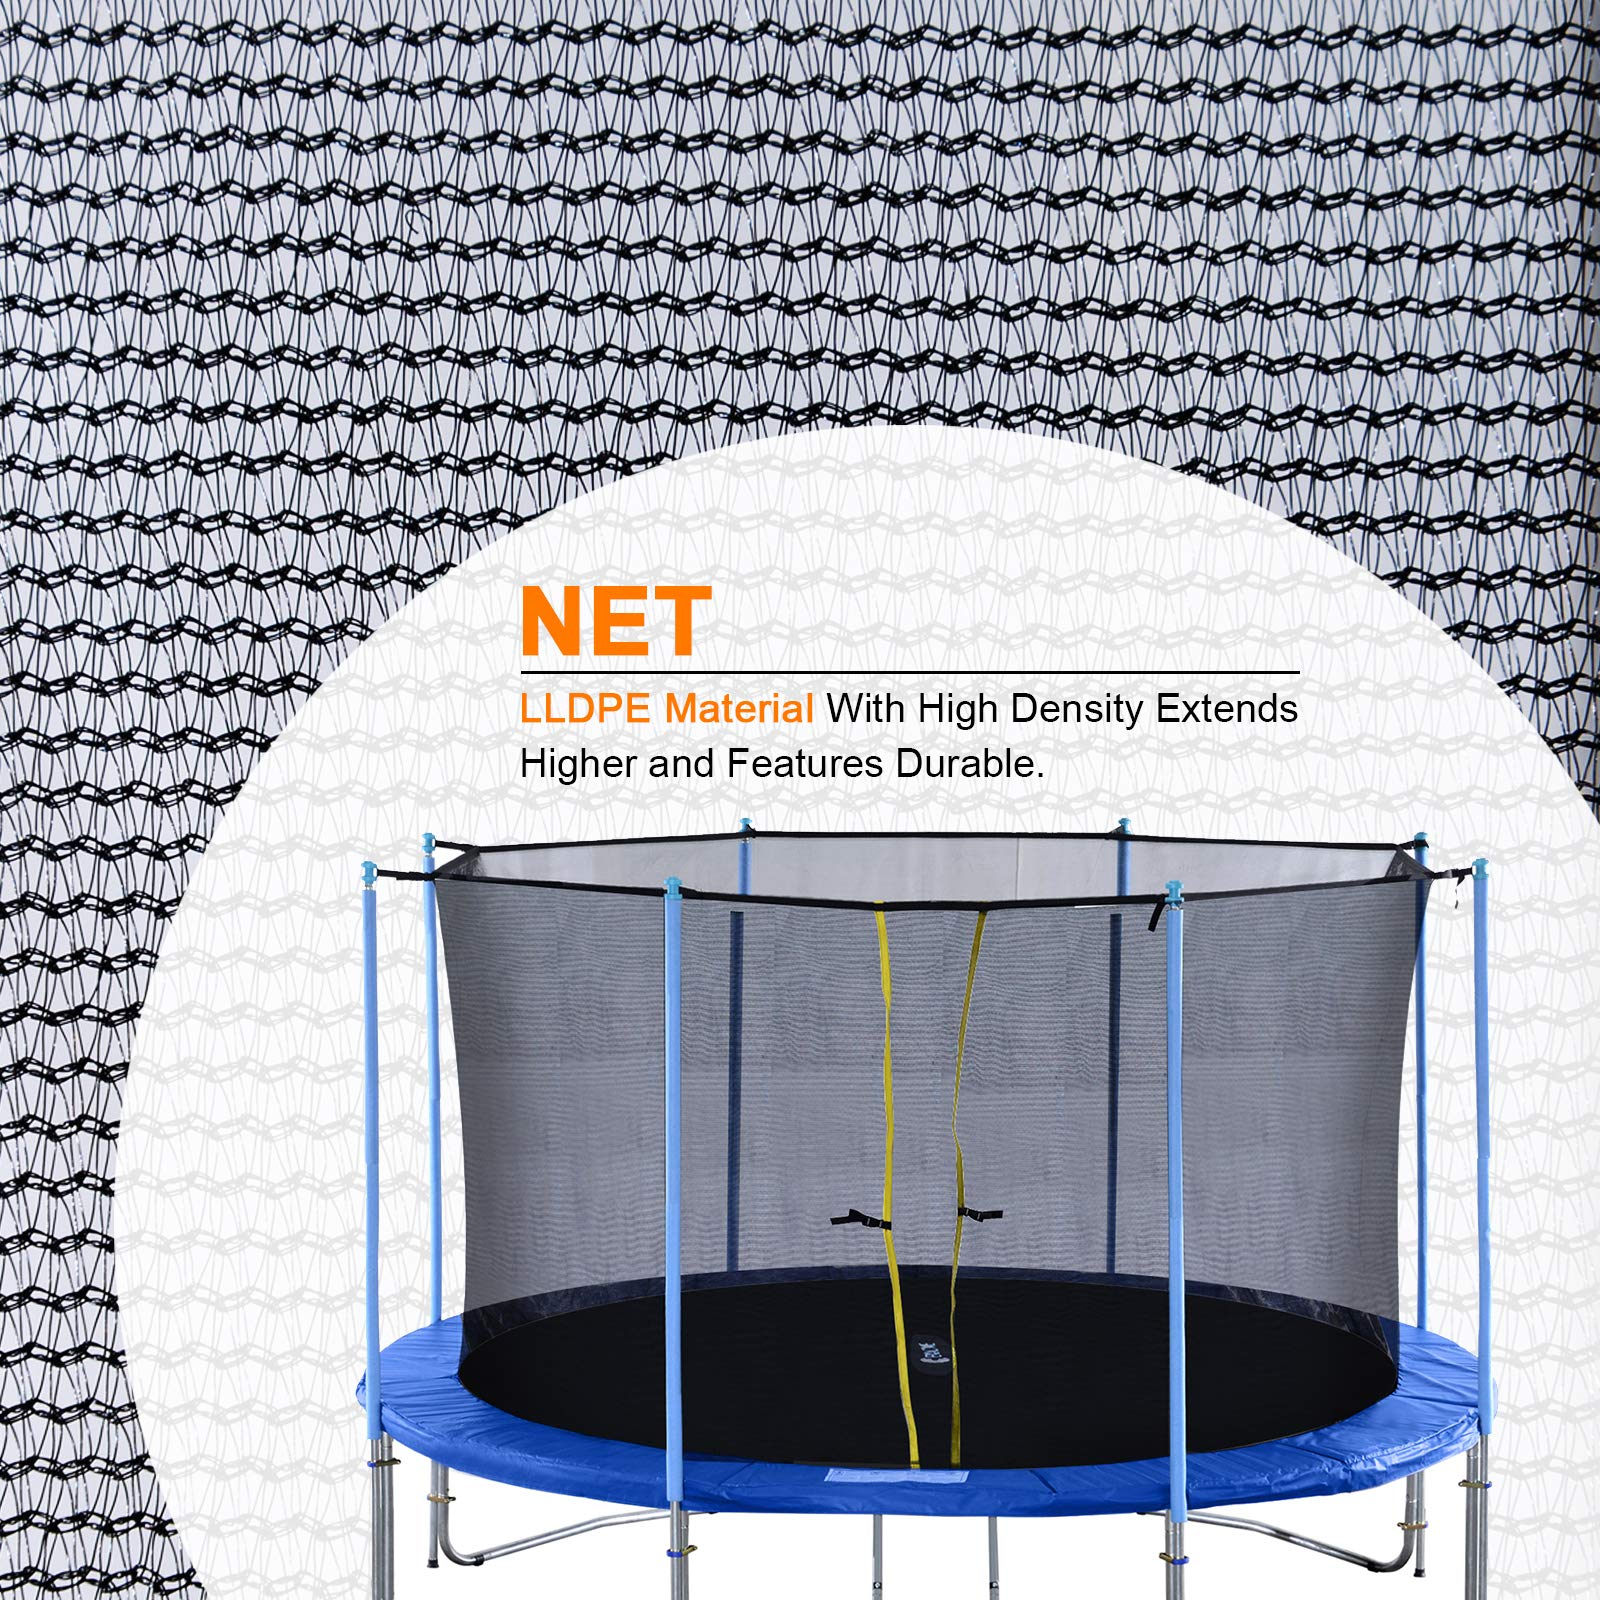 Exacme Inner Enclosure Safety Mesh Net with 6 Poles for C-Series 12 FT Trampoline 6181 by Exacme (Image #3)